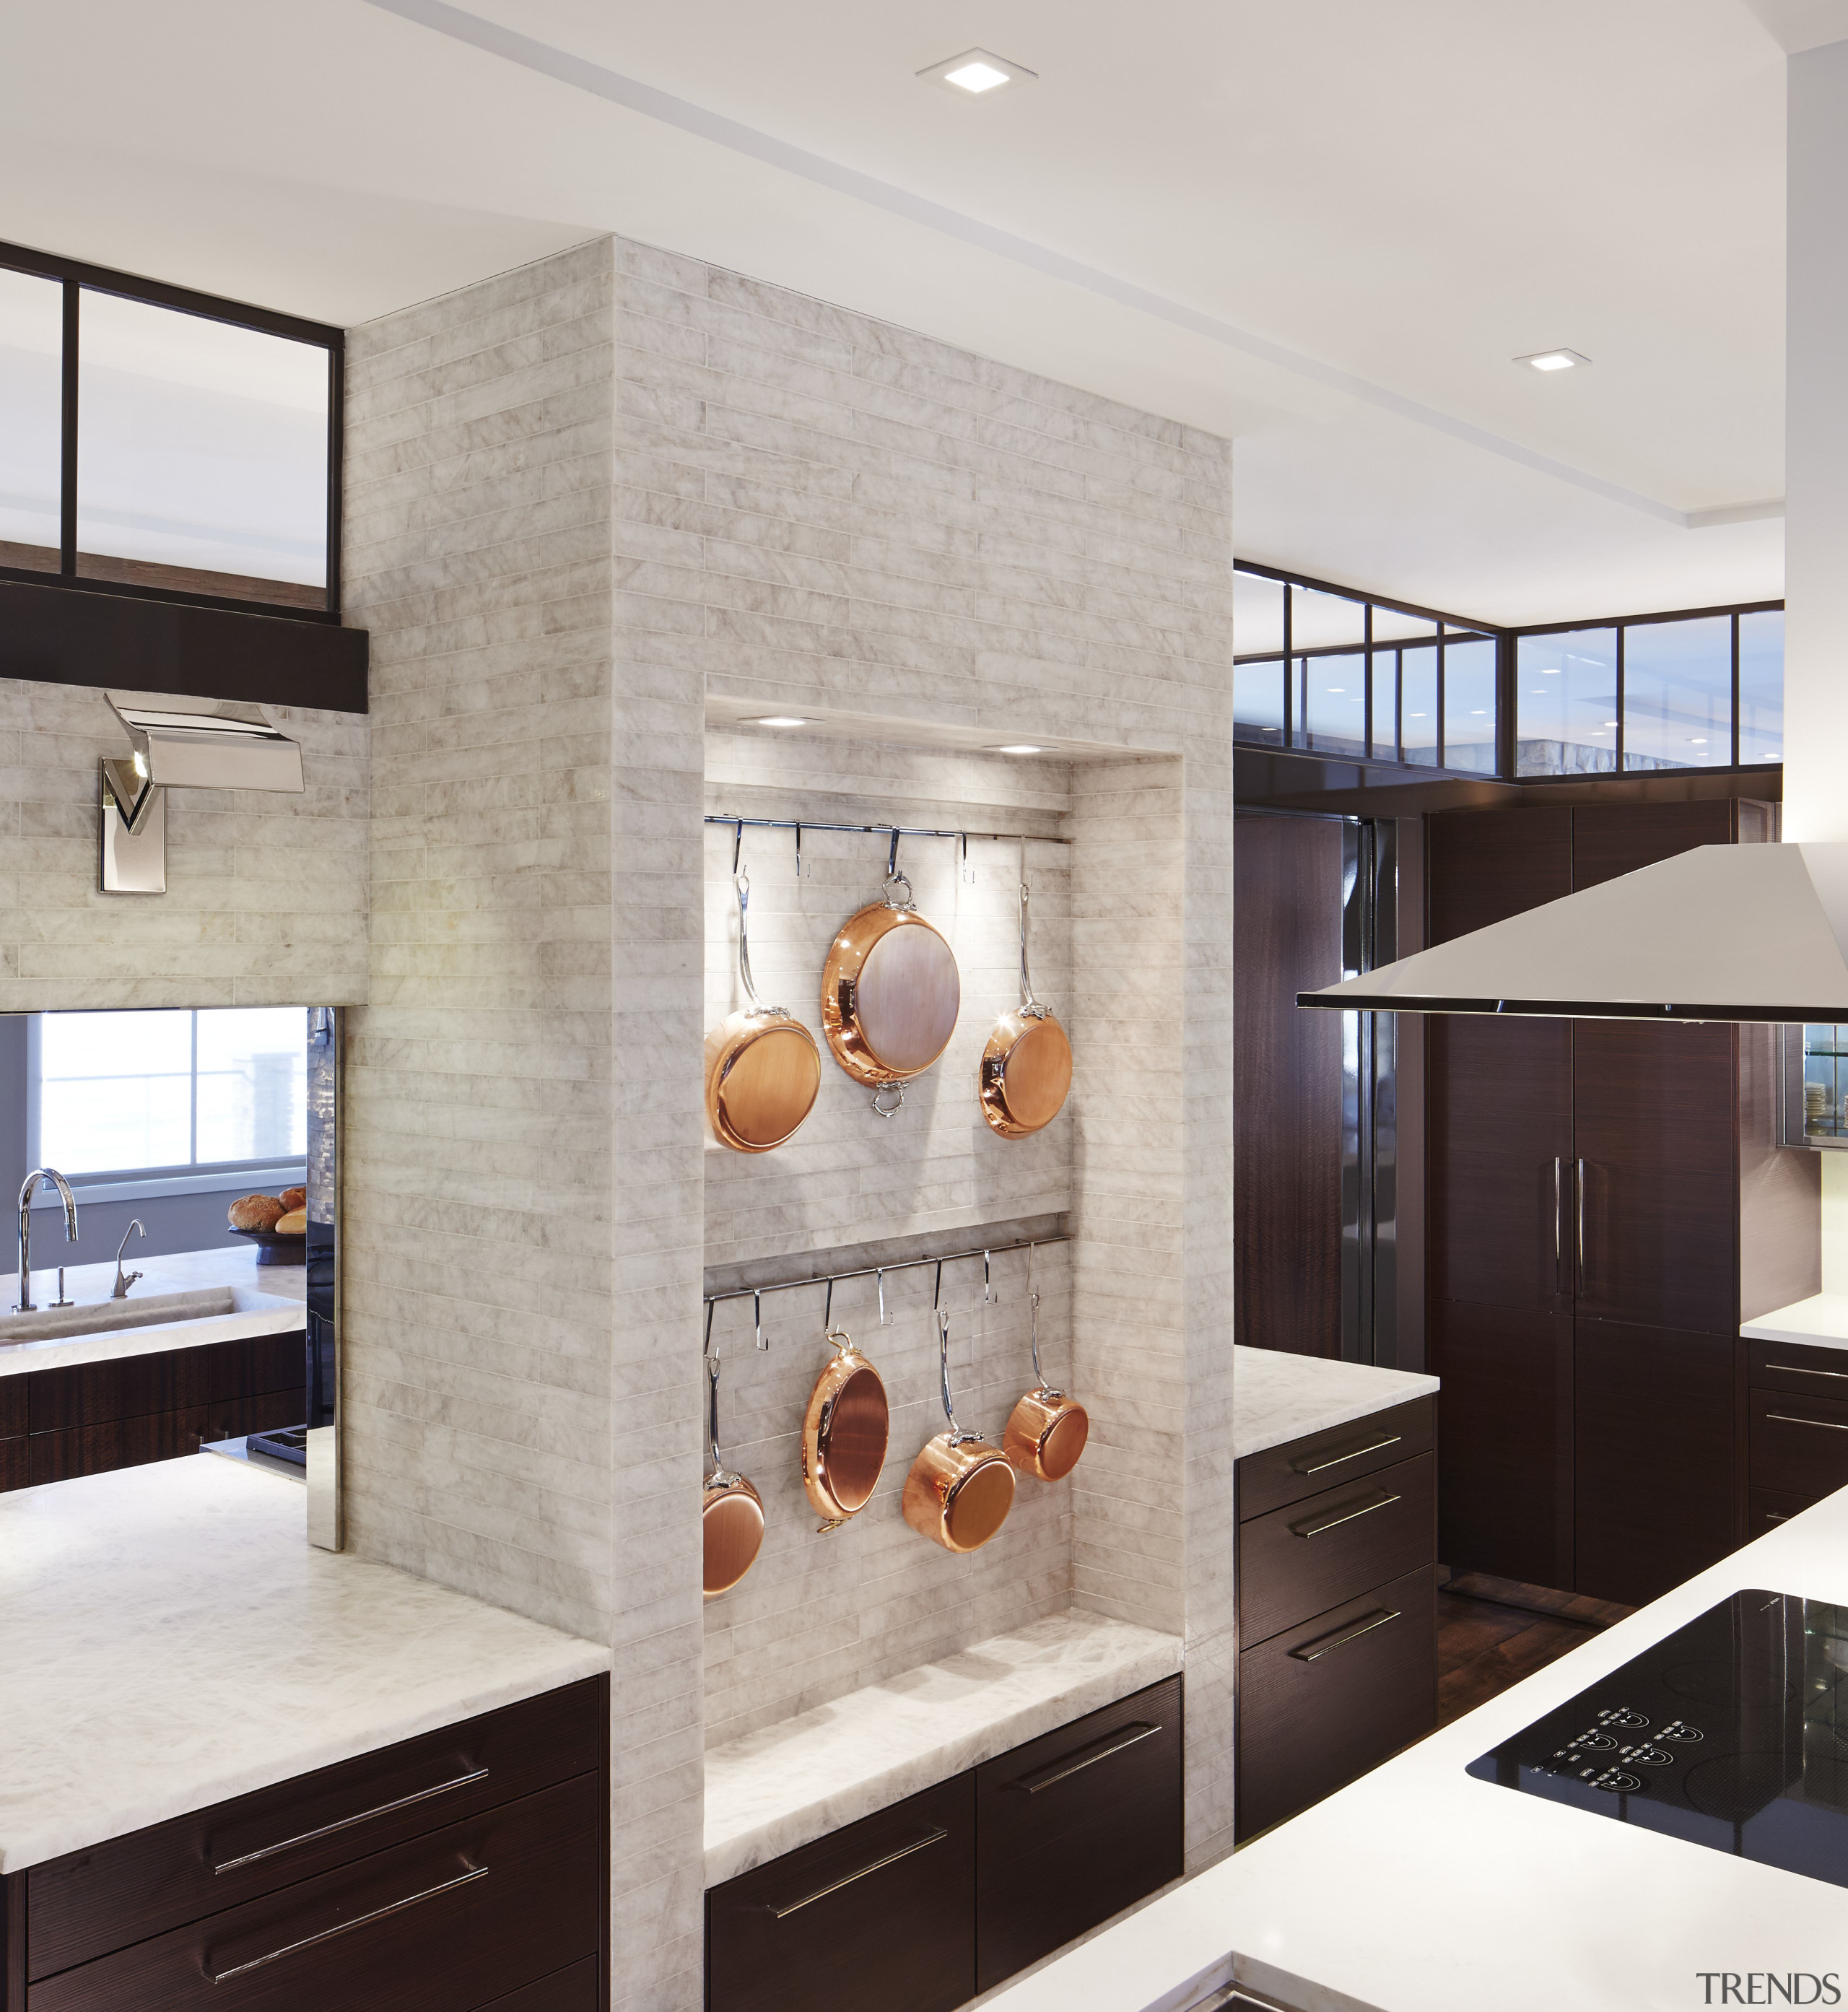 A central stone section divides the back-to-back kitchens cabinetry, countertop, cuisine classique, floor, flooring, home appliance, interior design, kitchen, gray